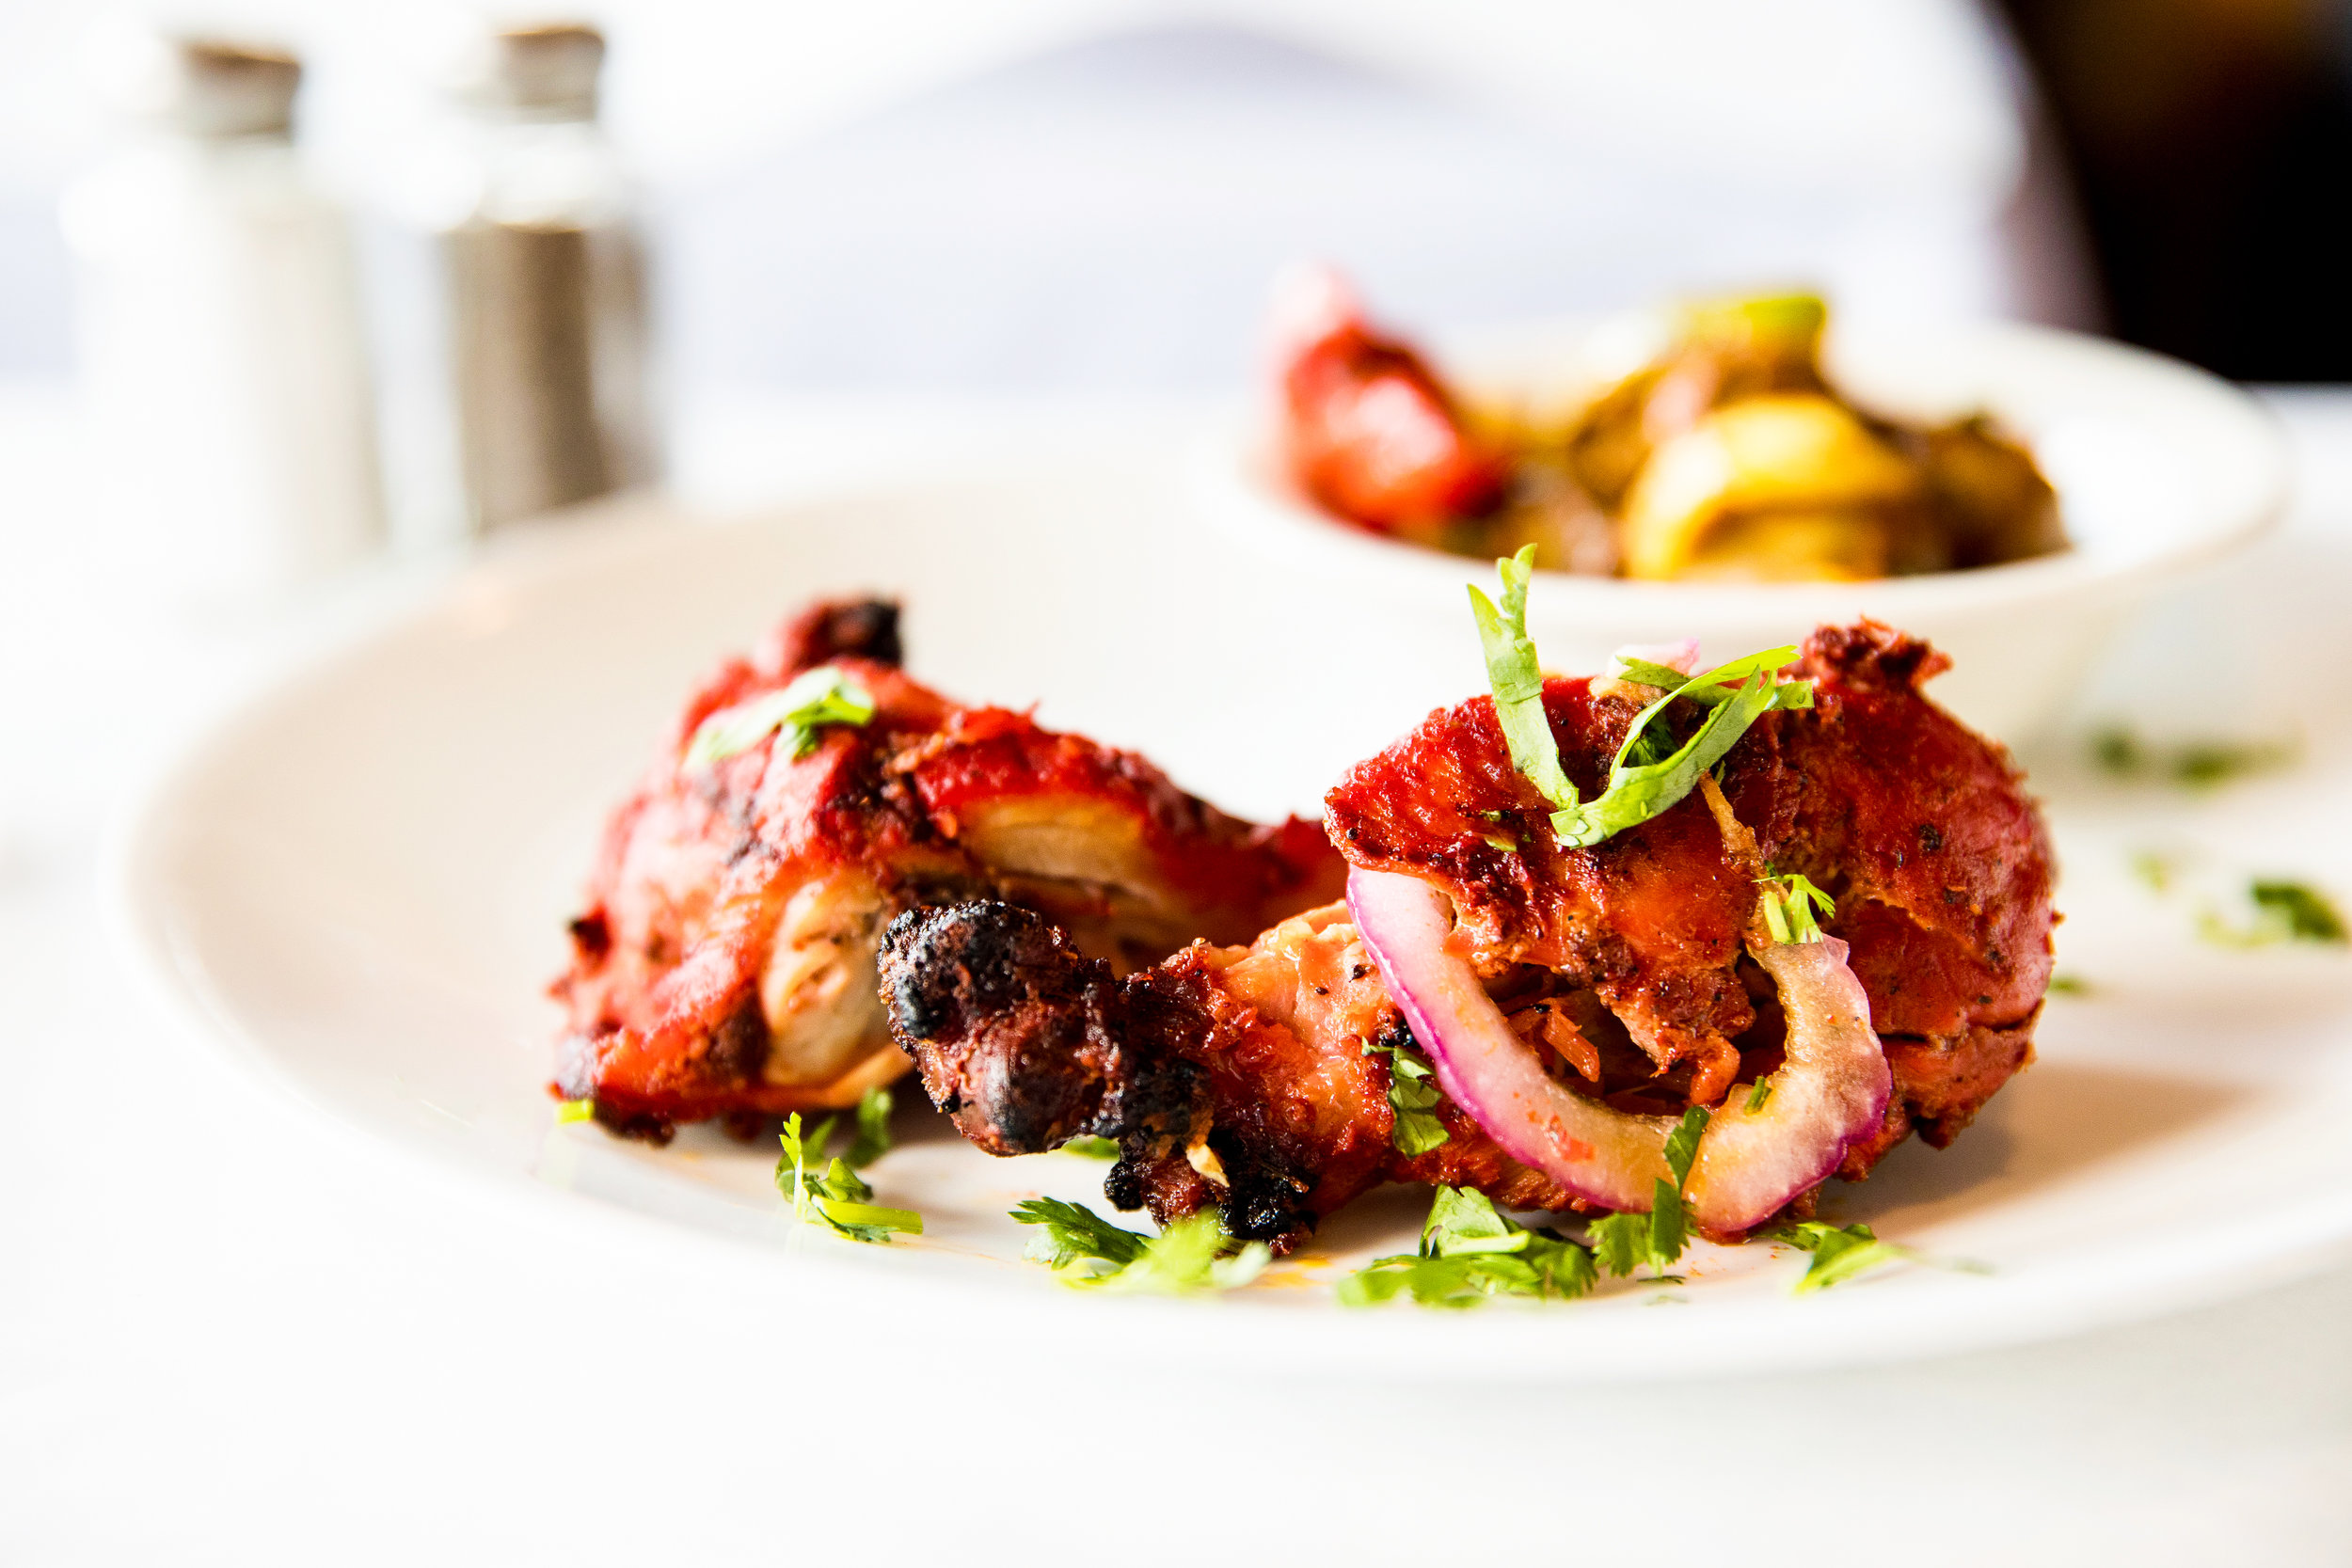 Tandoori Chicken - Juicy spring half chicken marinated in yogurt, fresh ground spices and saffron and served with sliced onions and lemons. $14